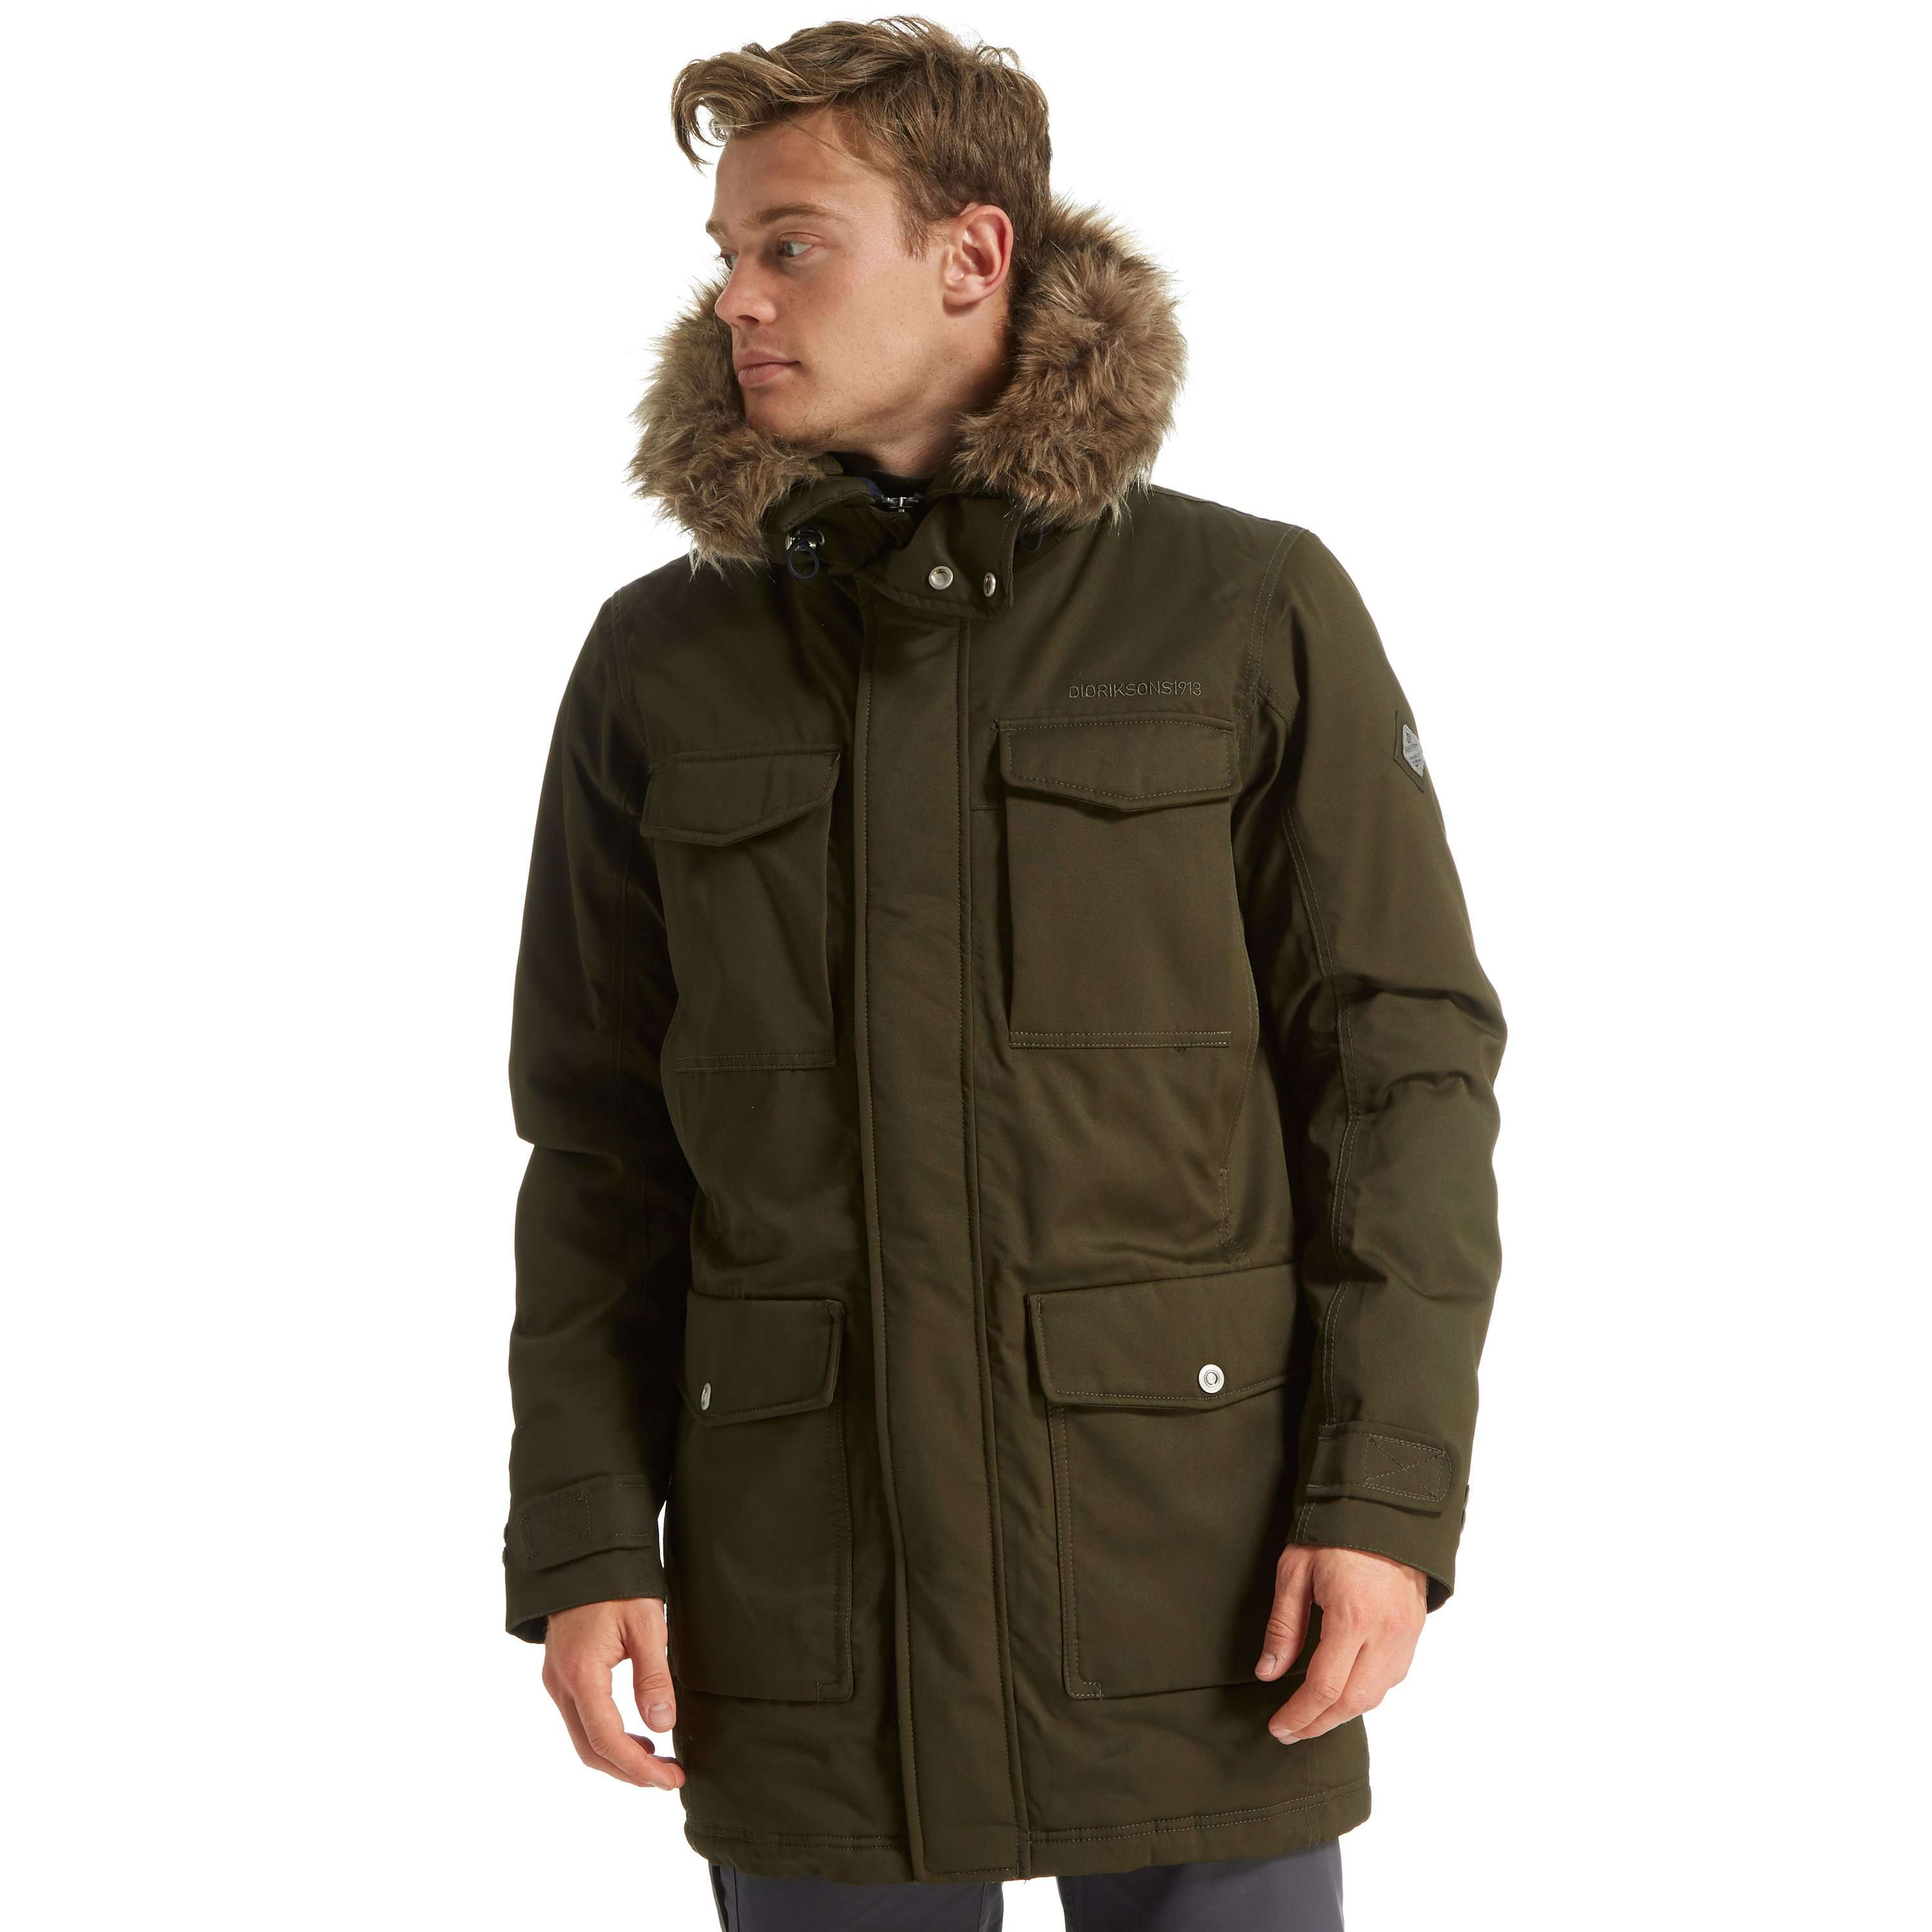 DIDRIKSONS Men's Shelter Parka